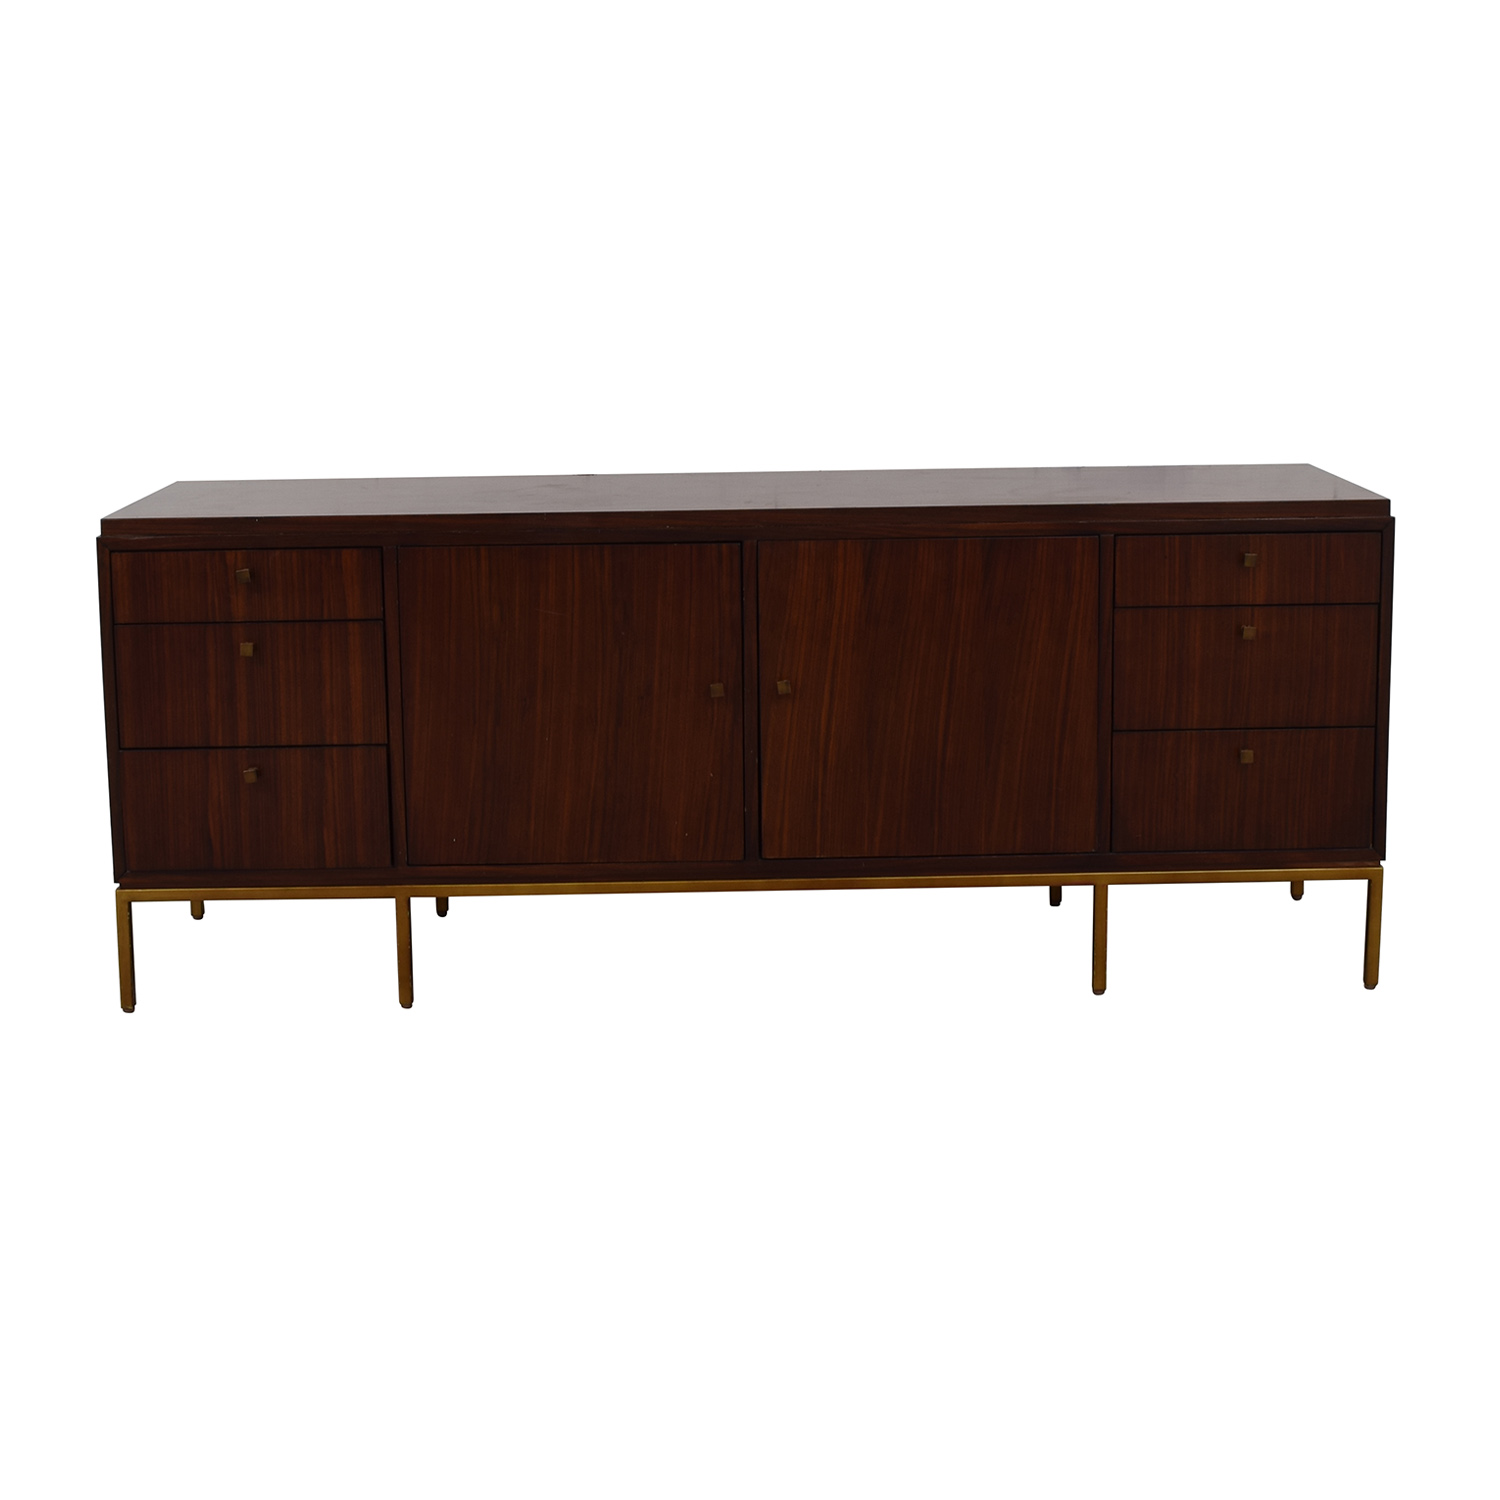 Mitchell Gold + Bob Williams Mitchell Gold + Bob Williams Mid Century Credenza Sideboard Storage